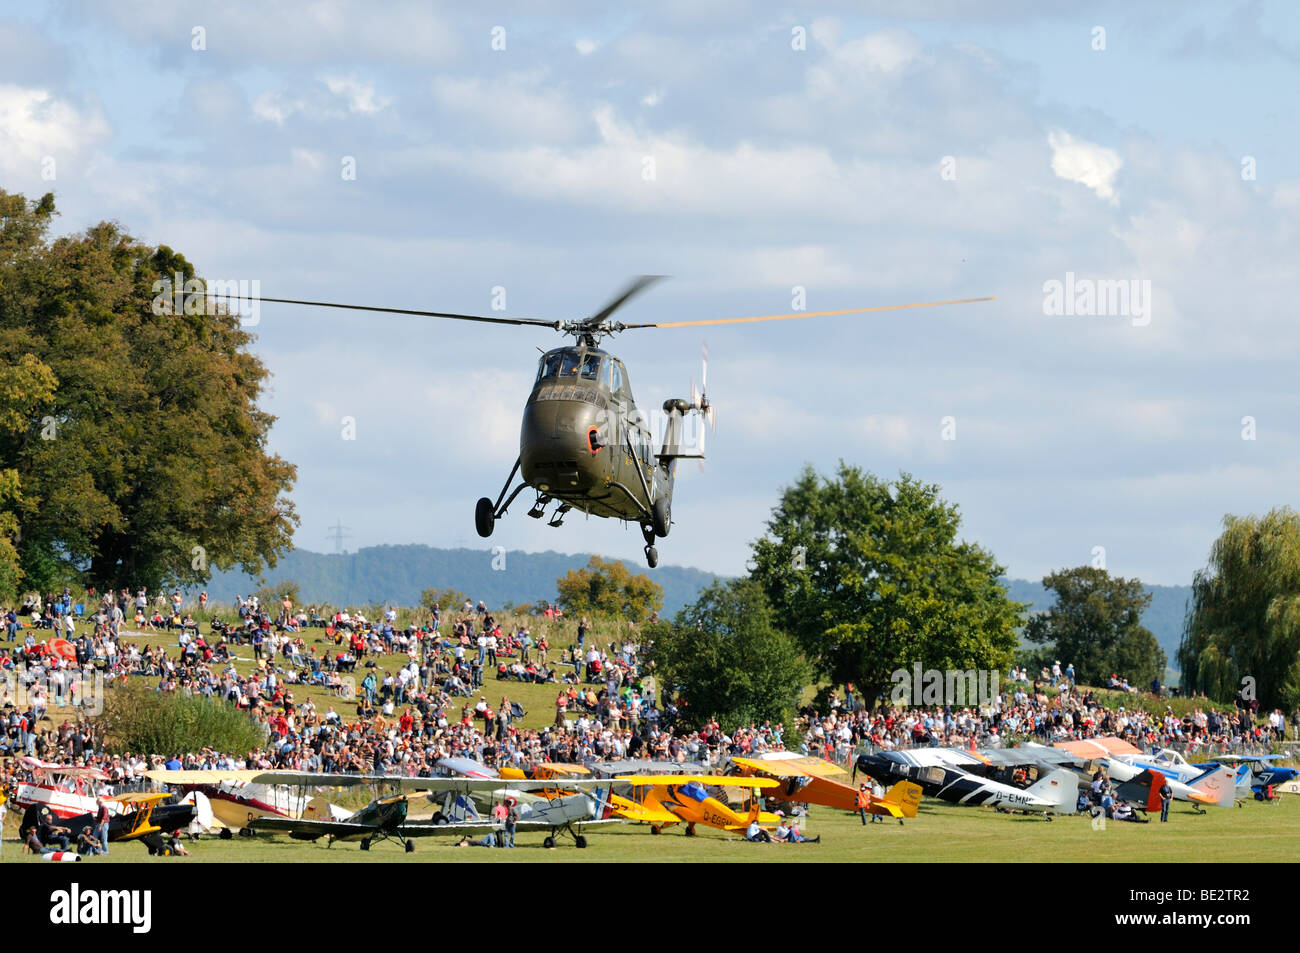 American transport helicopter Sikorsky S-58C during a flight demonstration, Europe's largest meeting of vintage planes at Hahnw Stock Photo